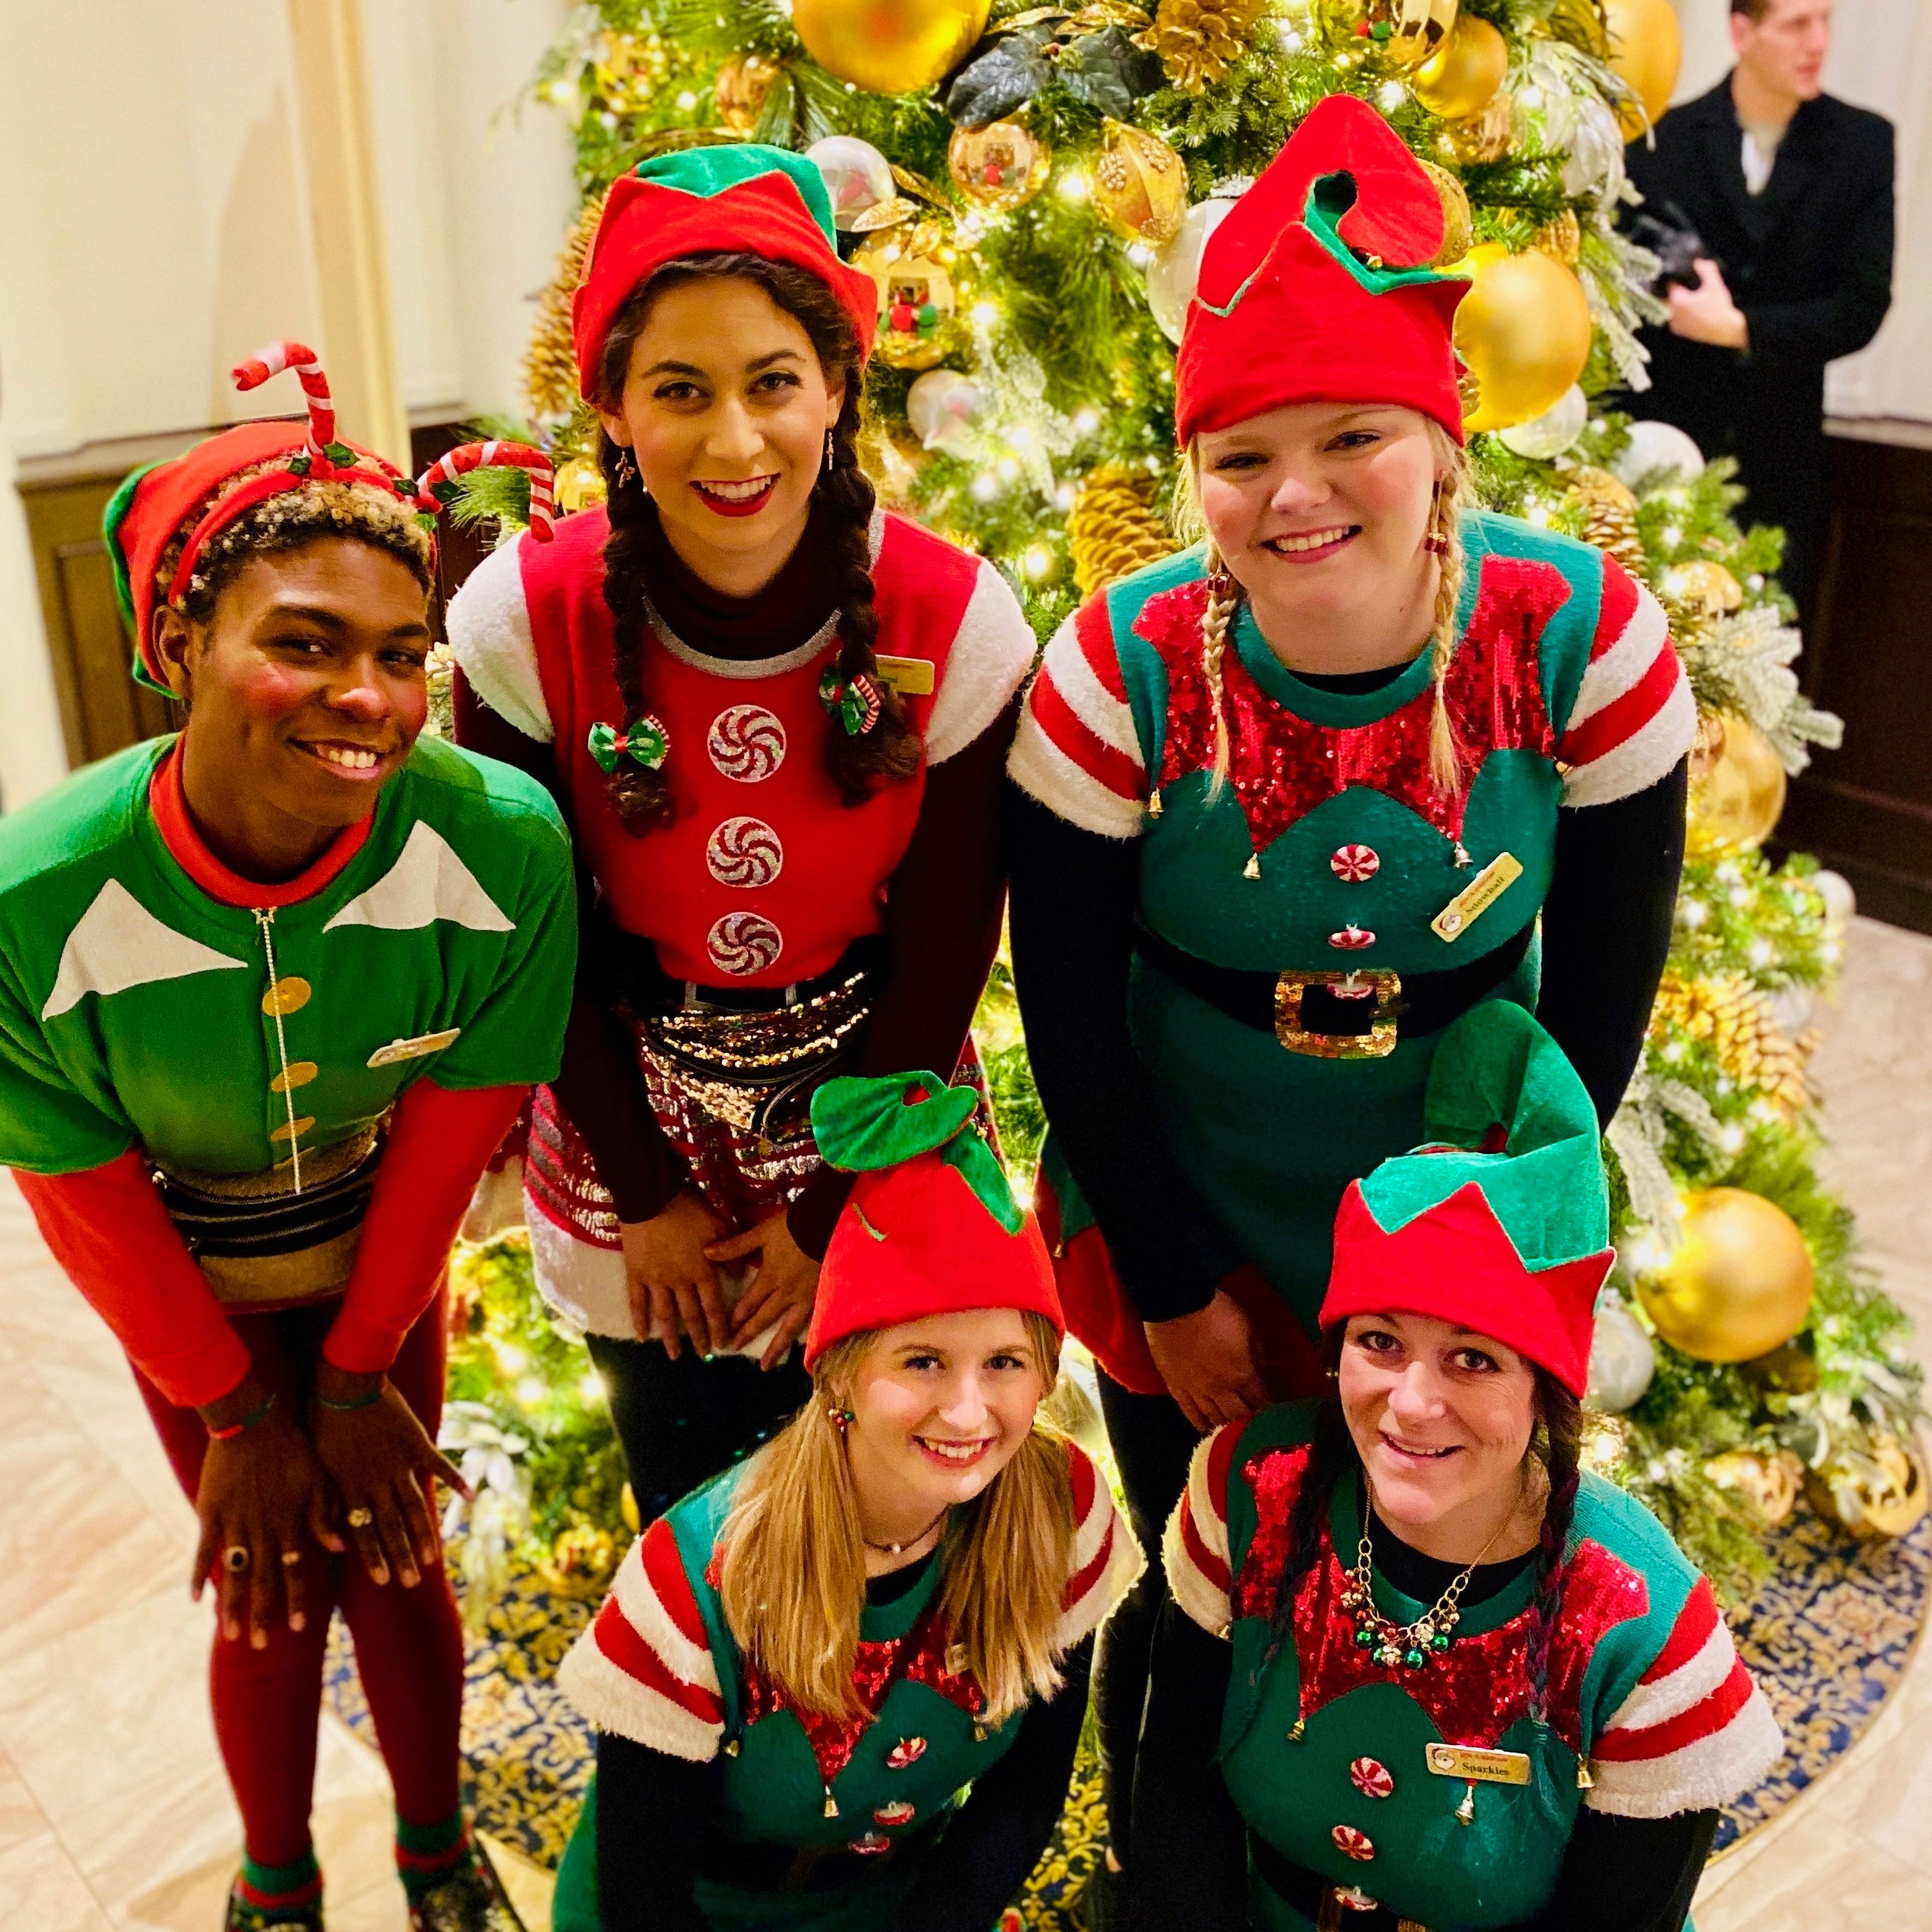 The Rent-A-Christmas Elf Squad in uniform